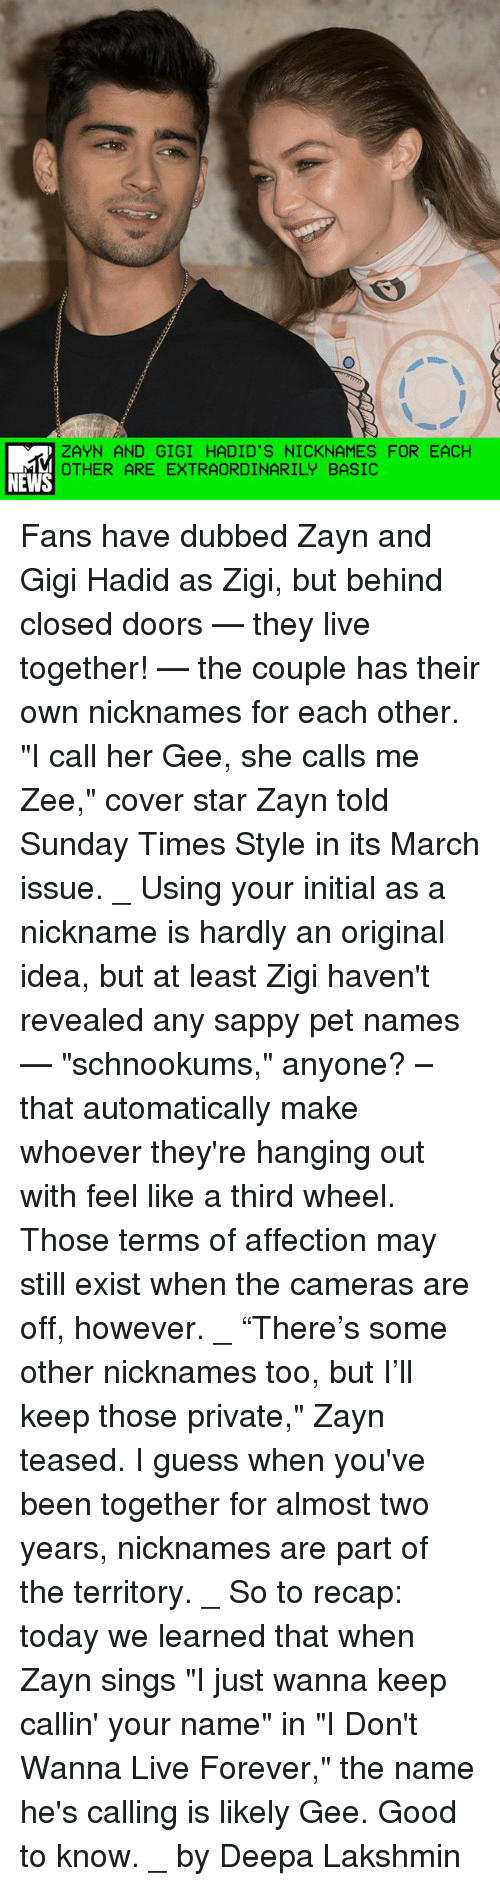 "Third Wheels: ZAYN AND GIGI HADID'S NICKNAMES FOR EACH  OTHER ARE EXTRAORDINARILY BASIC  NEWS Fans have dubbed Zayn and Gigi Hadid as Zigi, but behind closed doors — they live together! — the couple has their own nicknames for each other. ""I call her Gee, she calls me Zee,"" cover star Zayn told Sunday Times Style in its March issue. _ Using your initial as a nickname is hardly an original idea, but at least Zigi haven't revealed any sappy pet names — ""schnookums,"" anyone? – that automatically make whoever they're hanging out with feel like a third wheel. Those terms of affection may still exist when the cameras are off, however. _ ""There's some other nicknames too, but I'll keep those private,"" Zayn teased. I guess when you've been together for almost two years, nicknames are part of the territory. _ So to recap: today we learned that when Zayn sings ""I just wanna keep callin' your name"" in ""I Don't Wanna Live Forever,"" the name he's calling is likely Gee. Good to know. _ by Deepa Lakshmin"